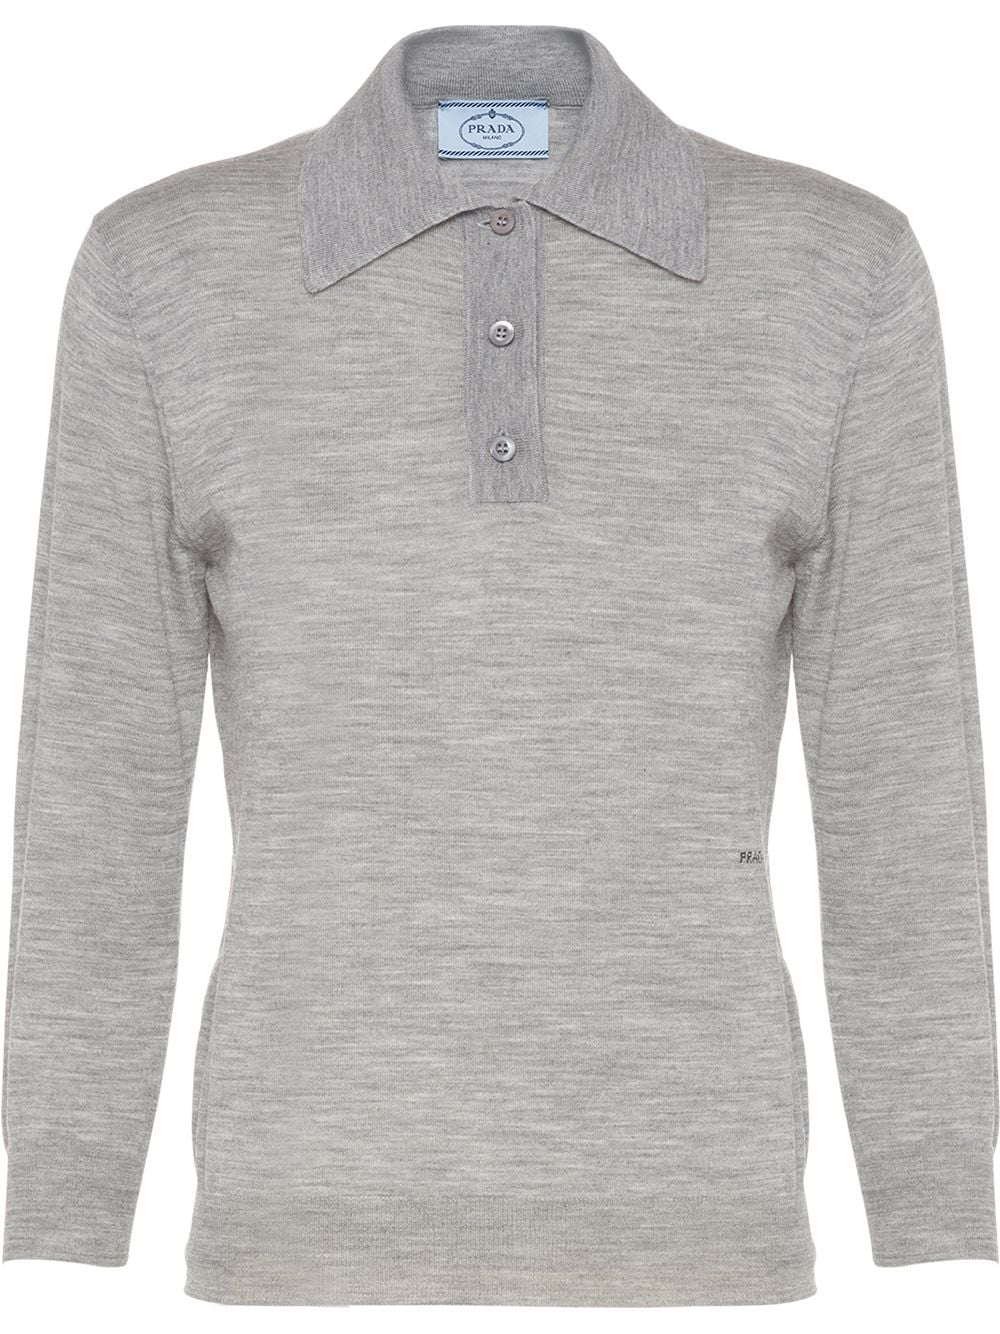 Prada knitted polo shirt - Grey von Prada